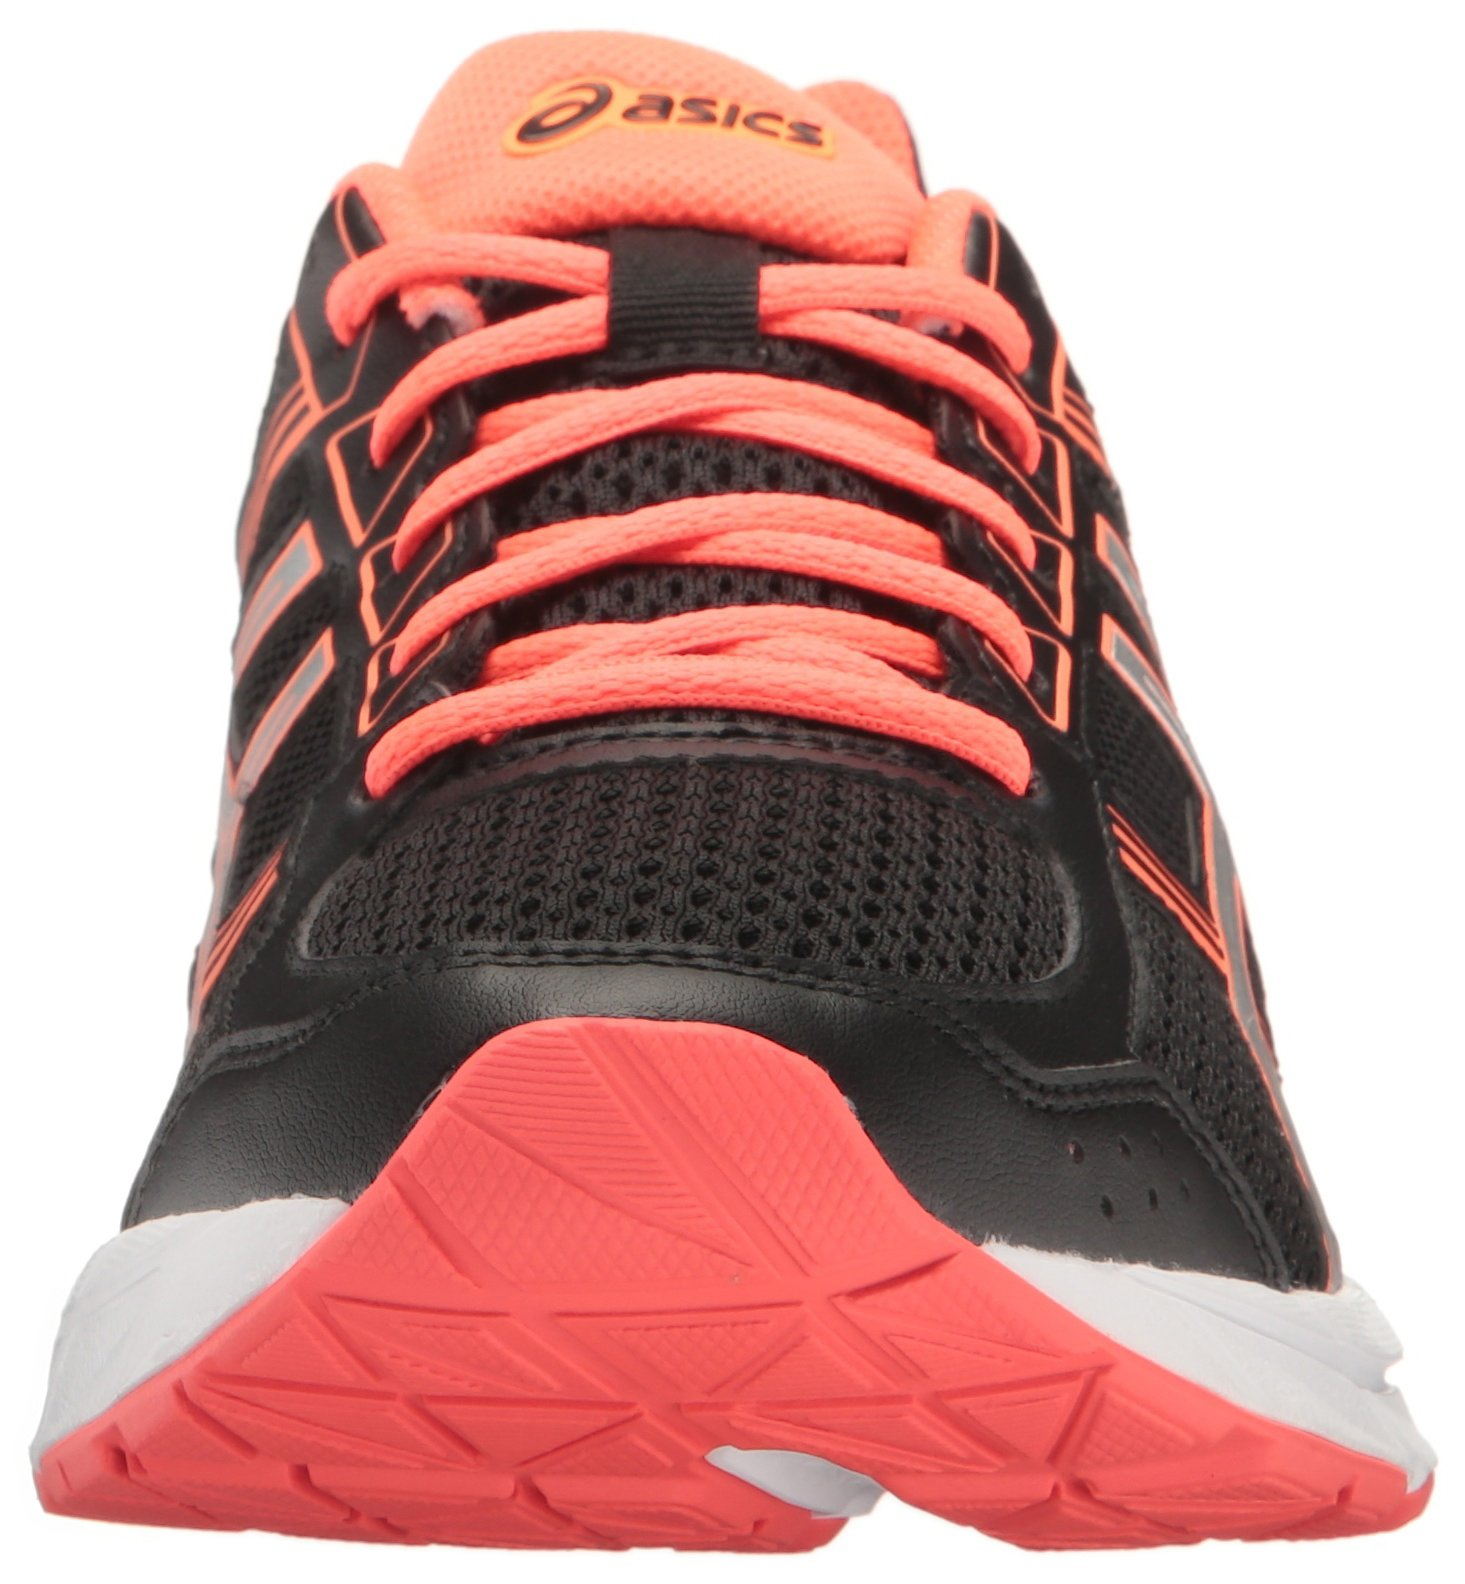 ASICS Women's Gel-Contend 4 Running Shoe, Black/Silver/Flash Coral, 5 M US by ASICS (Image #4)